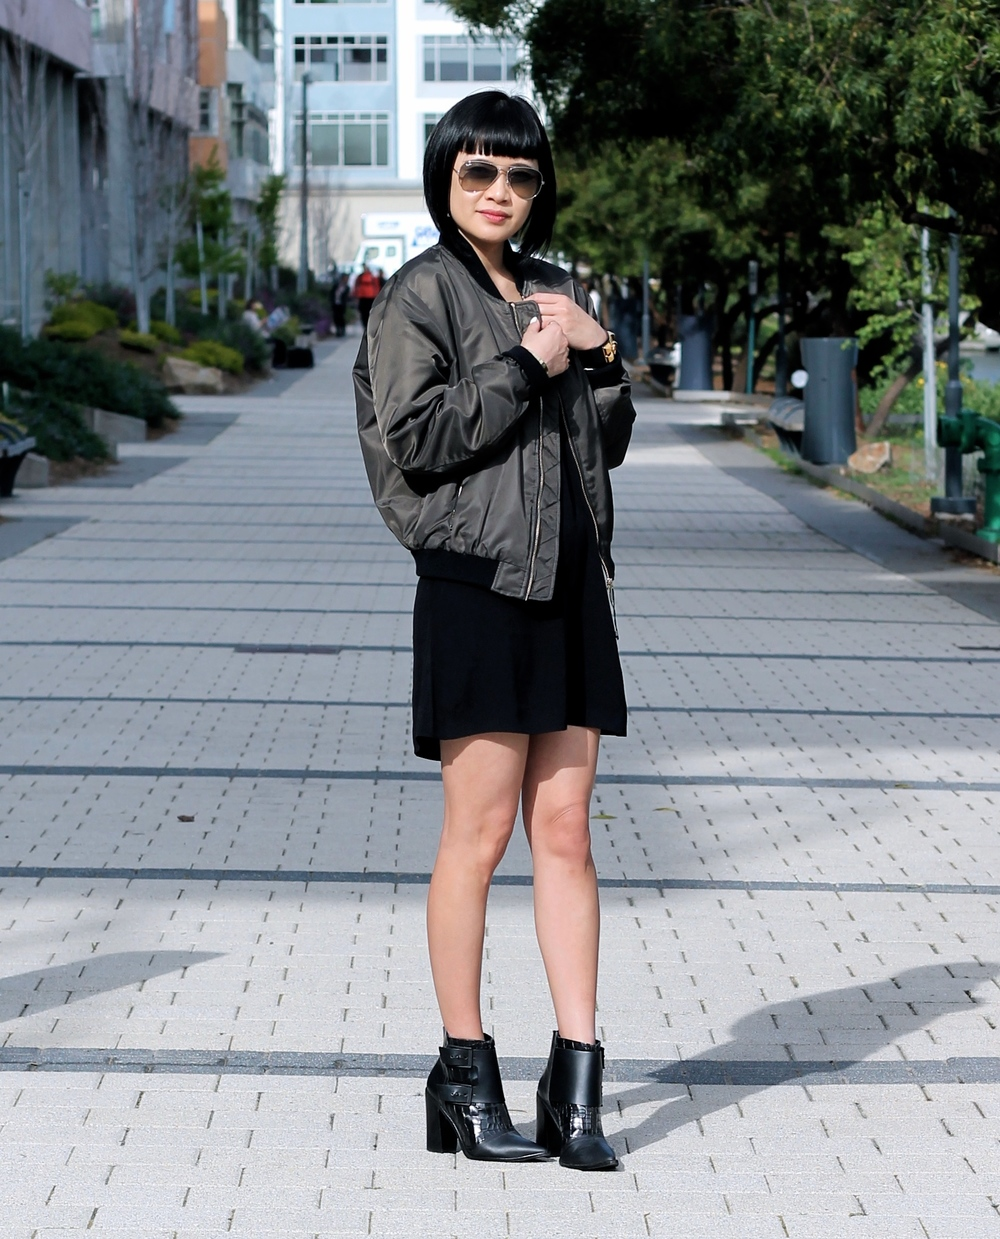 Zara jacket, Aritzia dress, Tibi booties, Ray Ban sunglasses